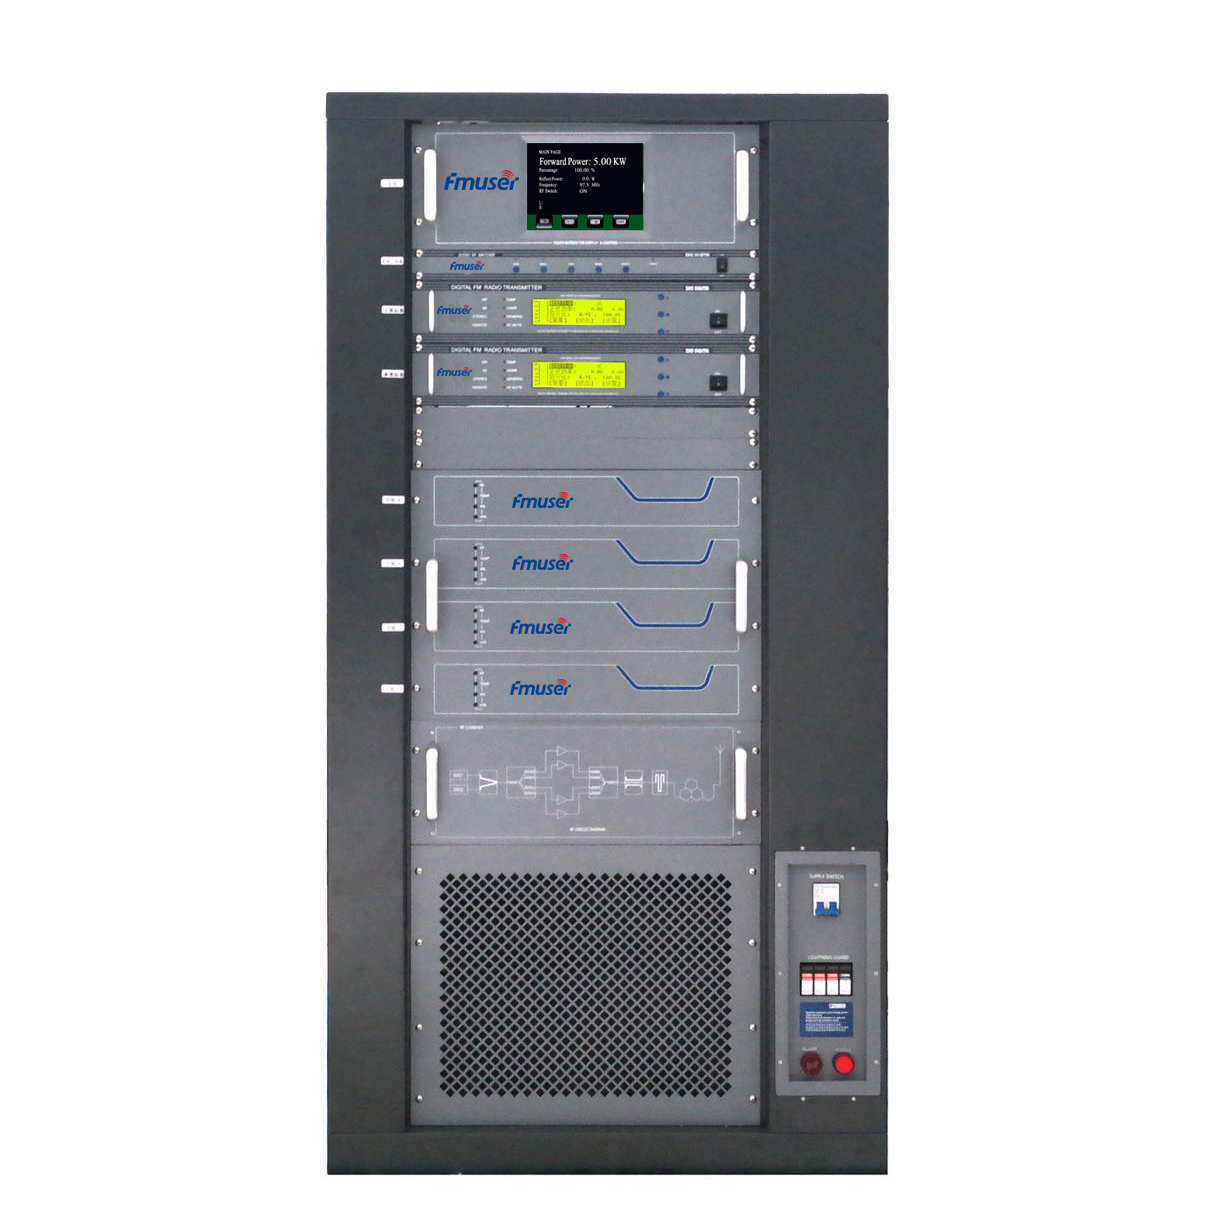 CZH618F-5kw 5000W 5KW Professional FM broadcast transmitter Rack Mount AES/EBU wiith AGC for City Radio Station